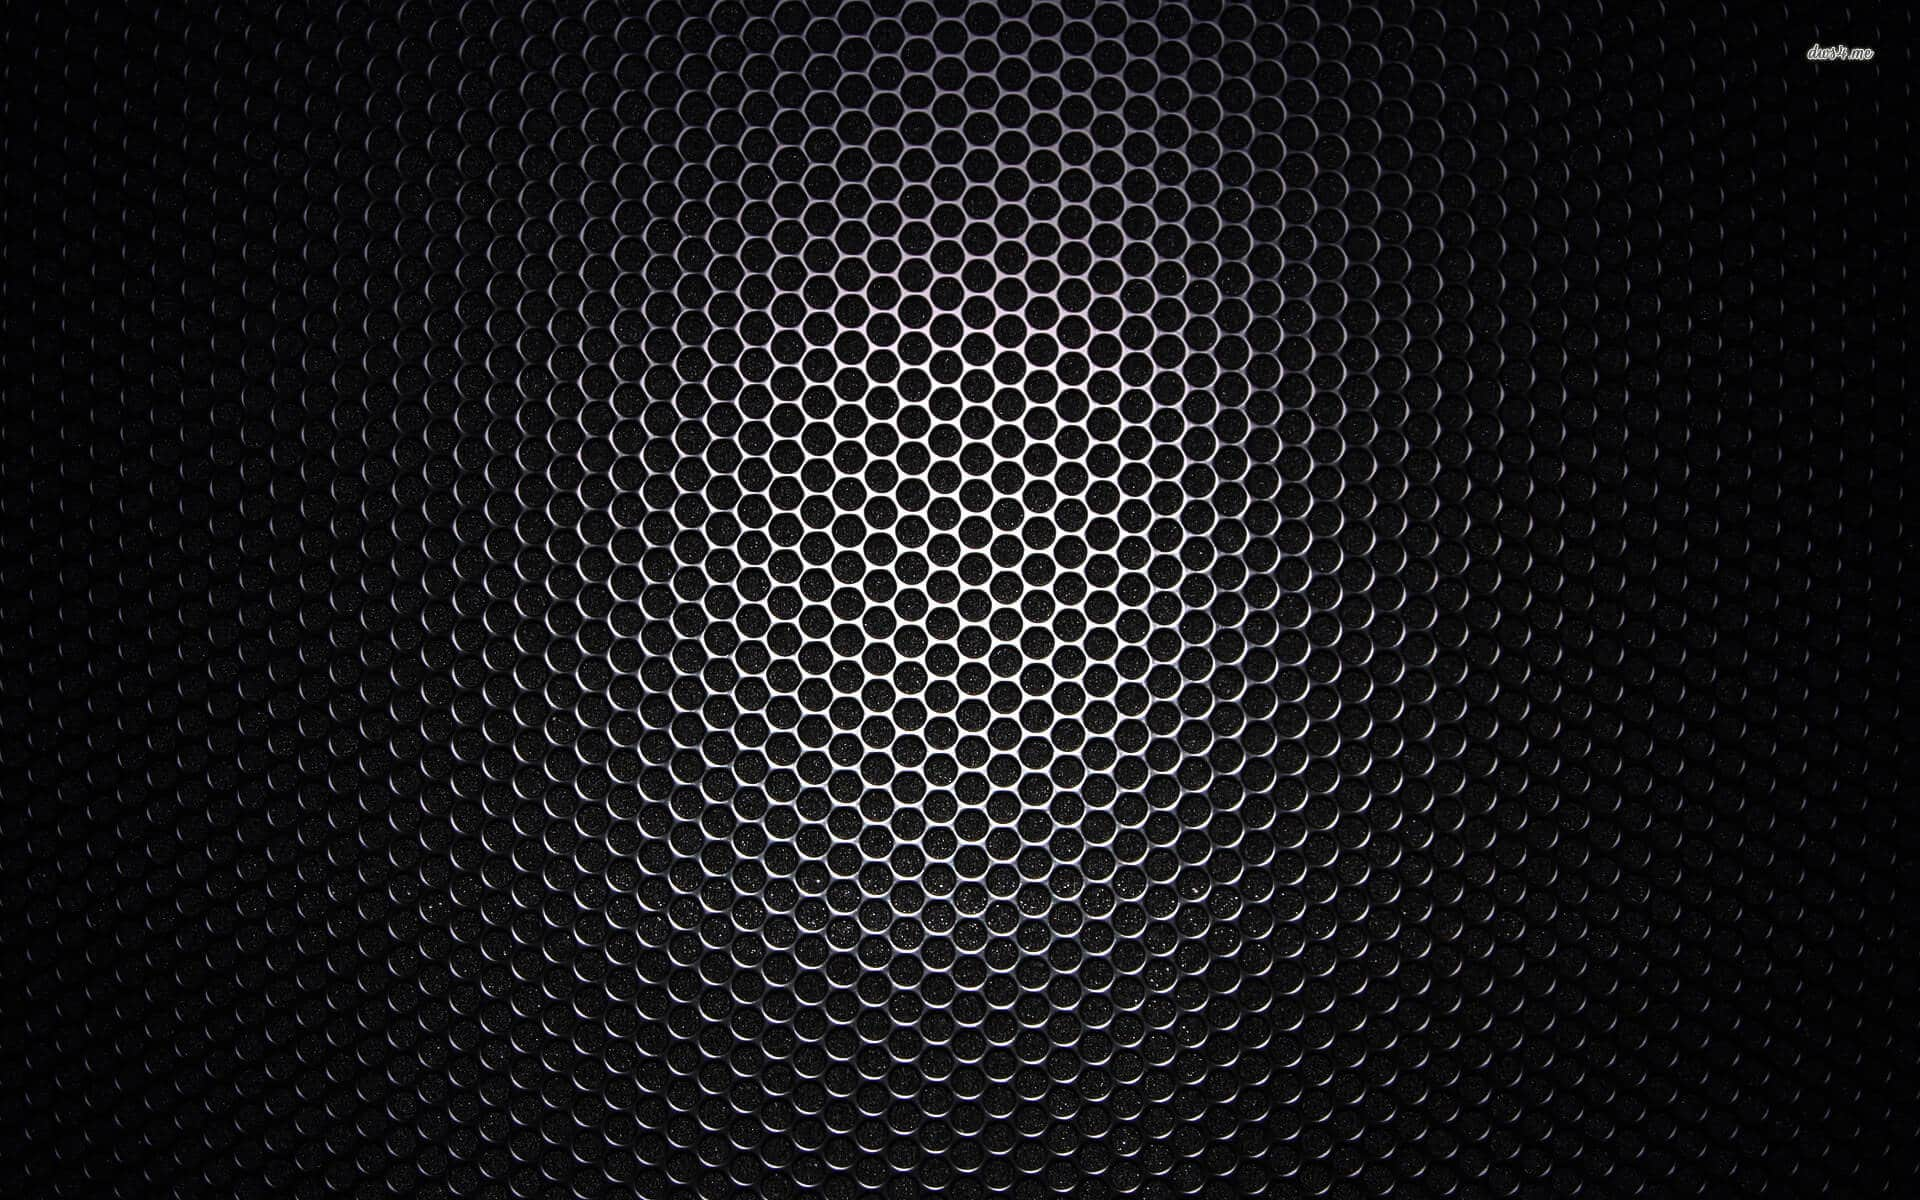 3370-metal-grill-texture-1920x1200-abstract-wallpaper